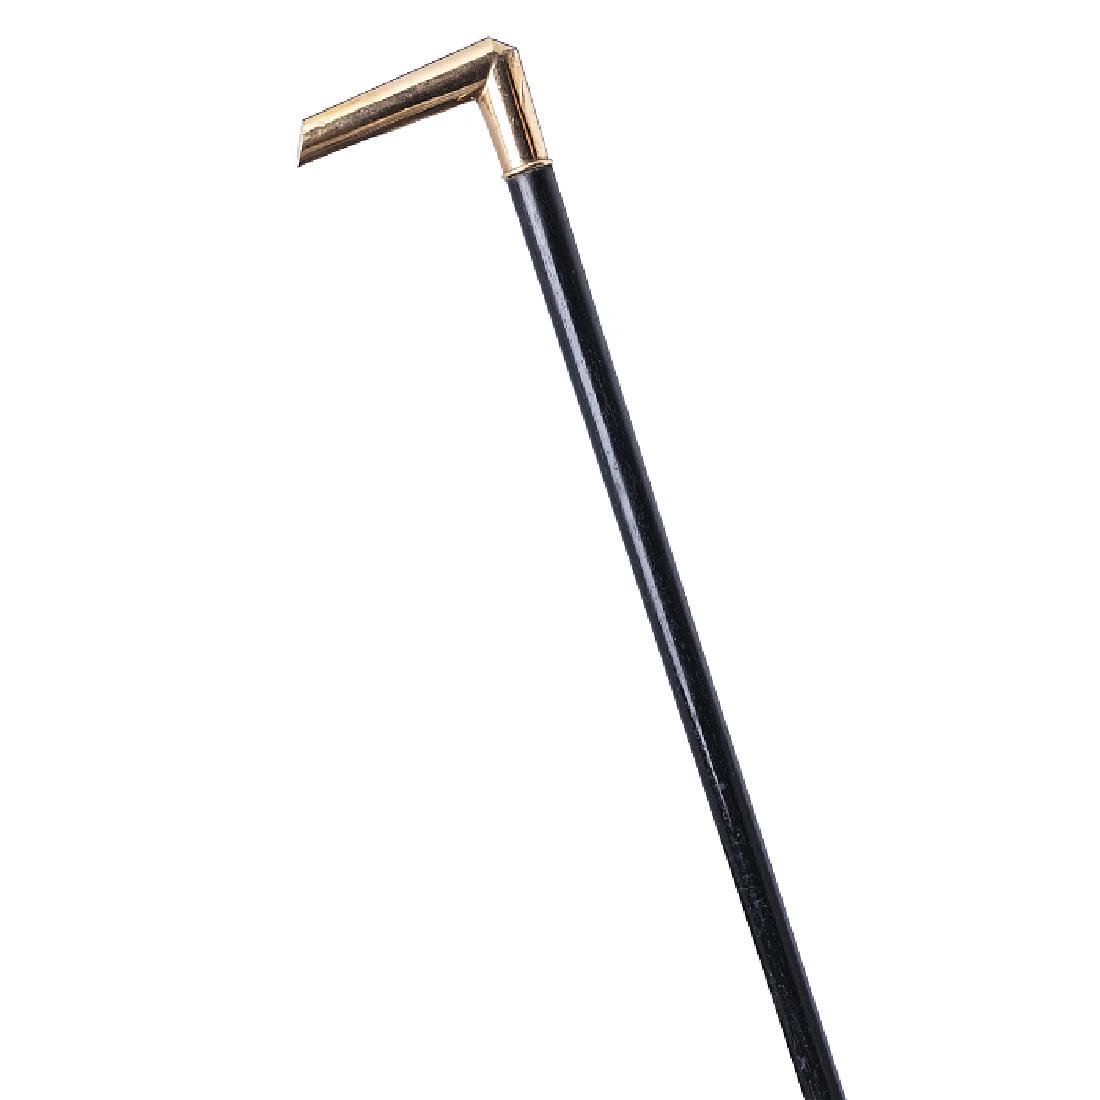 Walking stick with a knob in gold